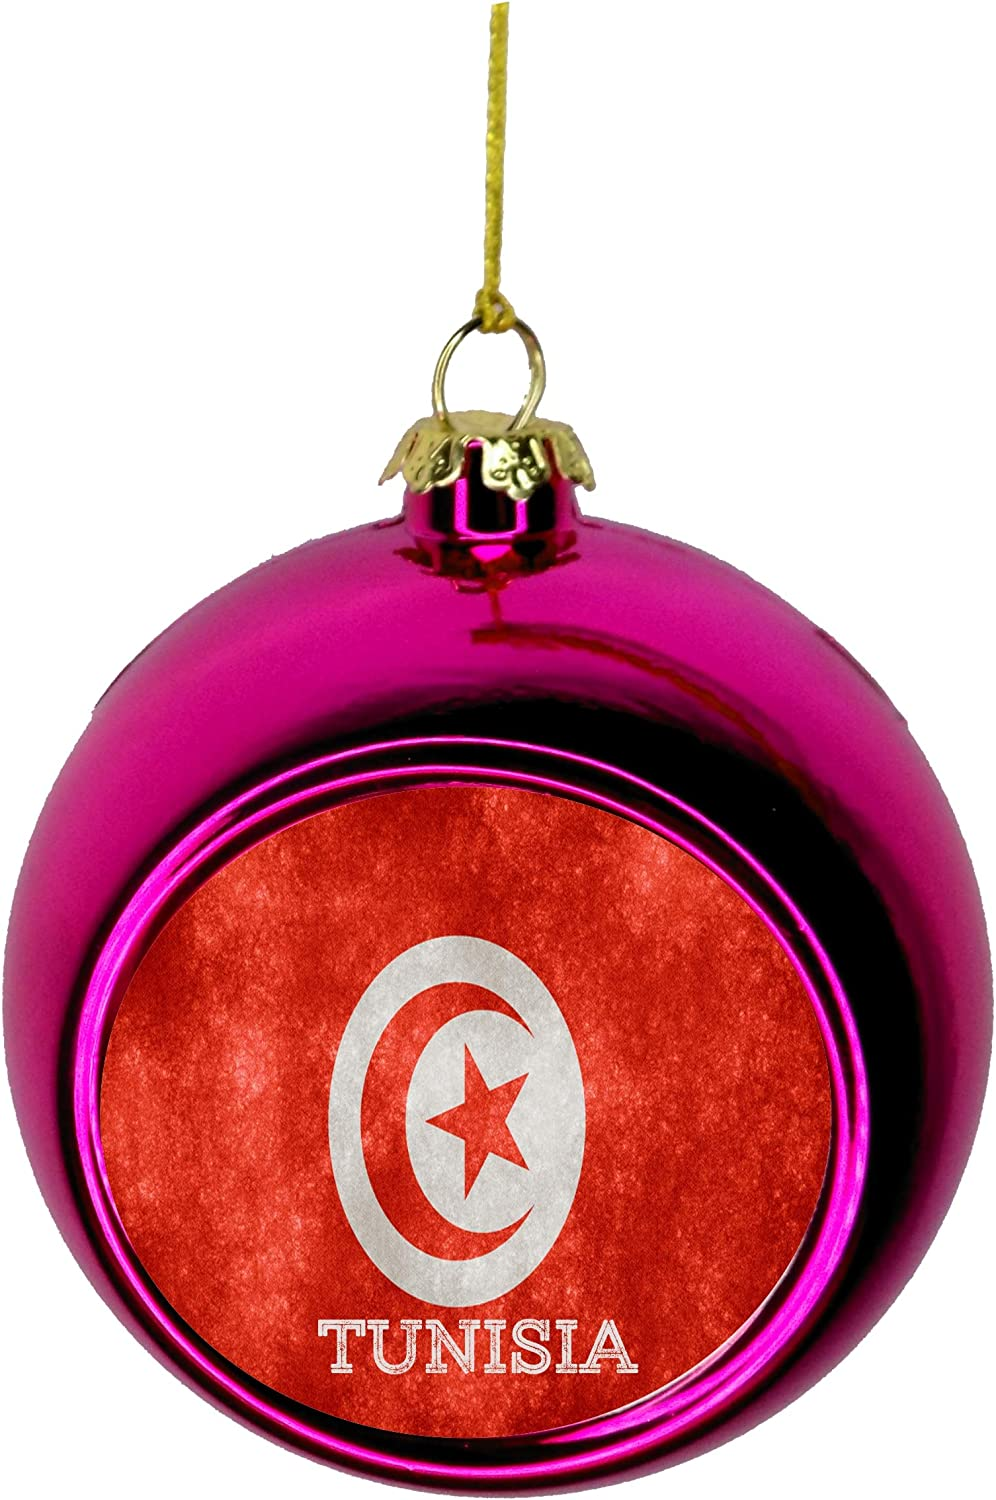 Amazon Com Rosie Parker Inc Flag Tunisia Tunisian Grunge Bauble Christmas Ornaments Pink Bauble Tree Xmas Balls Home Kitchen